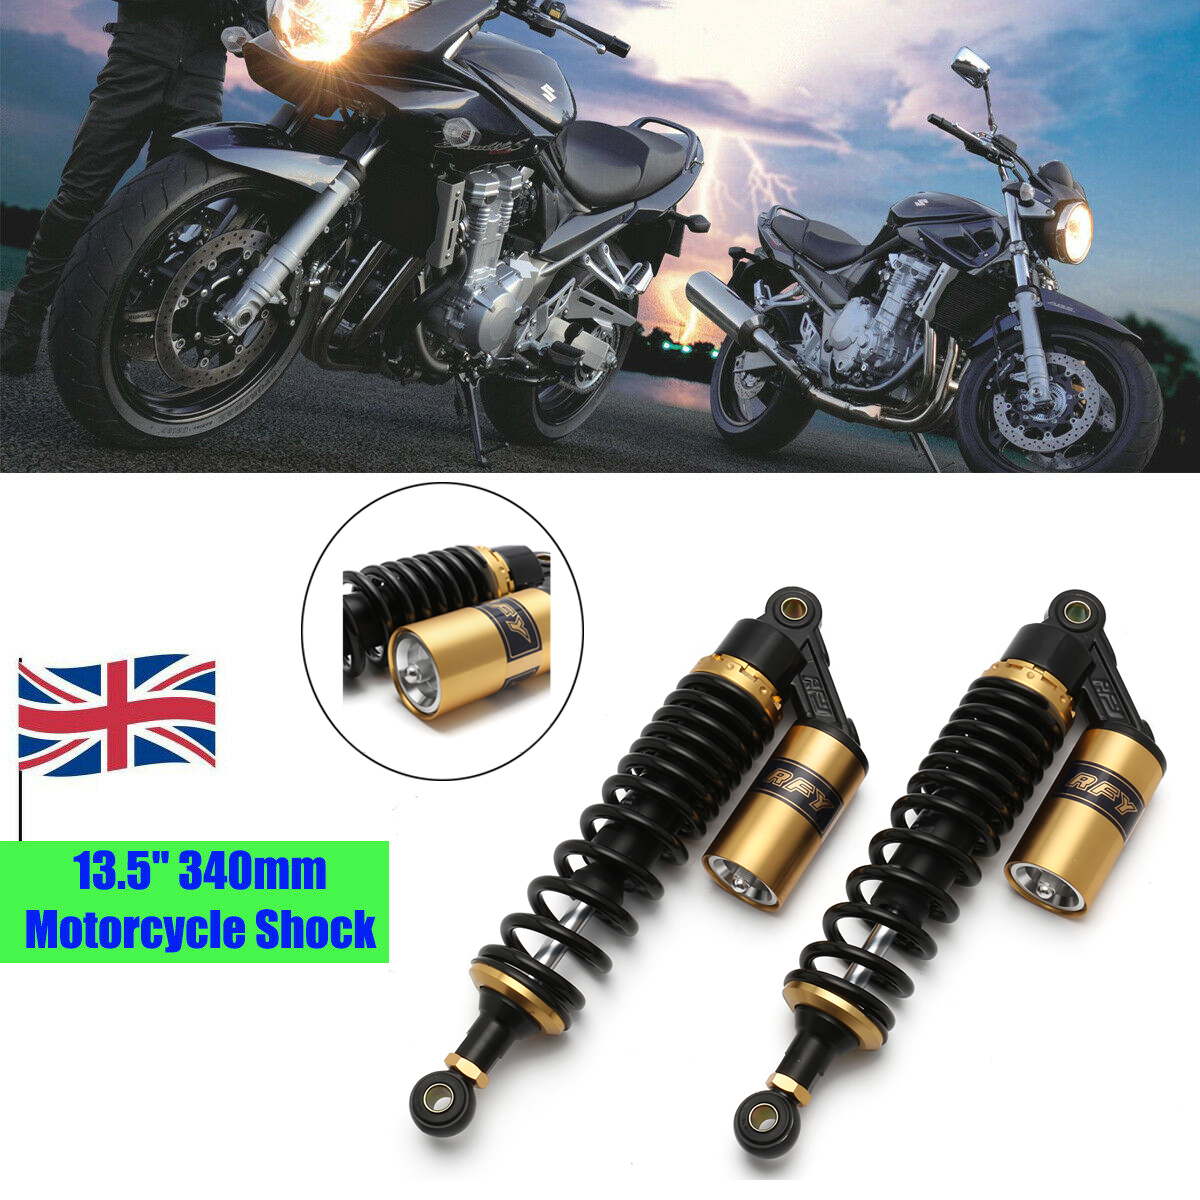 Gold /& Black NEVERLAND 340mm 13.5 Motorcycle Rear Shock Absorbers Gas Suspension for BMW Triumph Honda Suzuki Black Gold